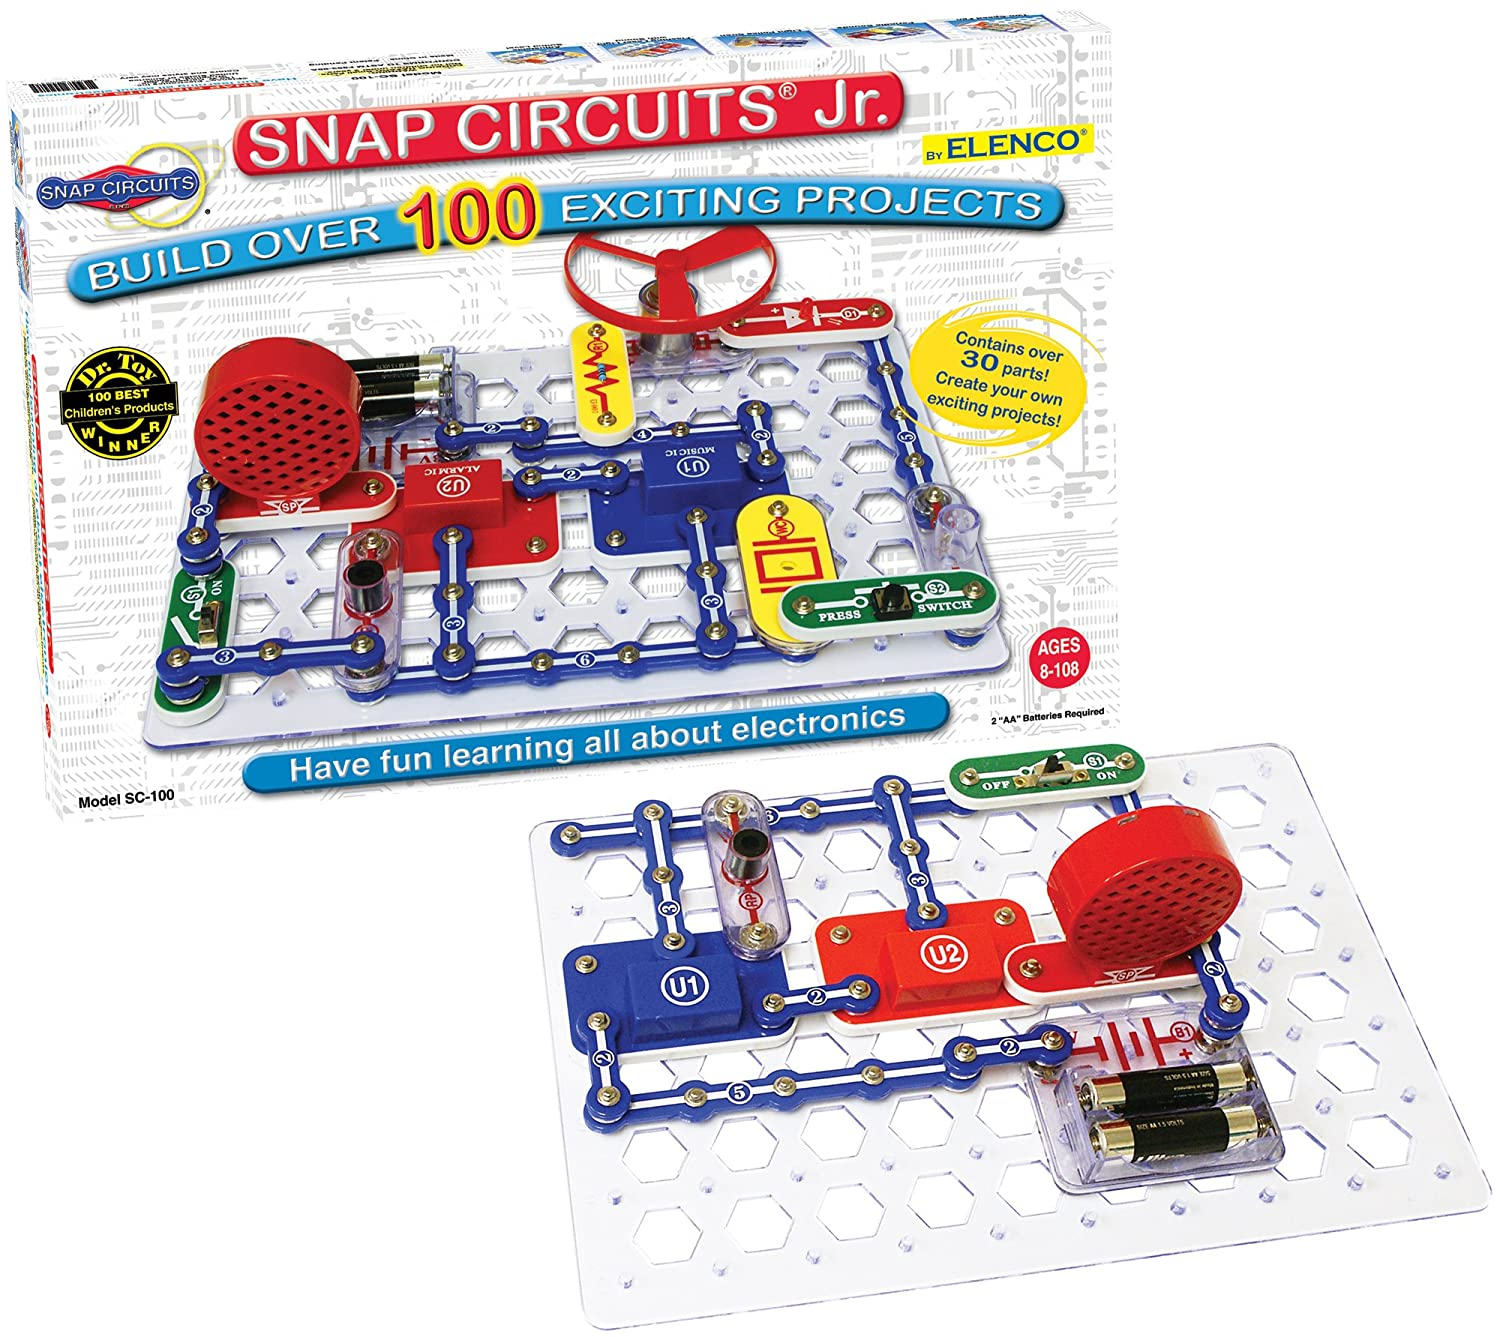 91lfaA93v0L._SL1500_ amazon com snap circuits jr sc 100 electronics discovery kit circuit builder fuse box at crackthecode.co